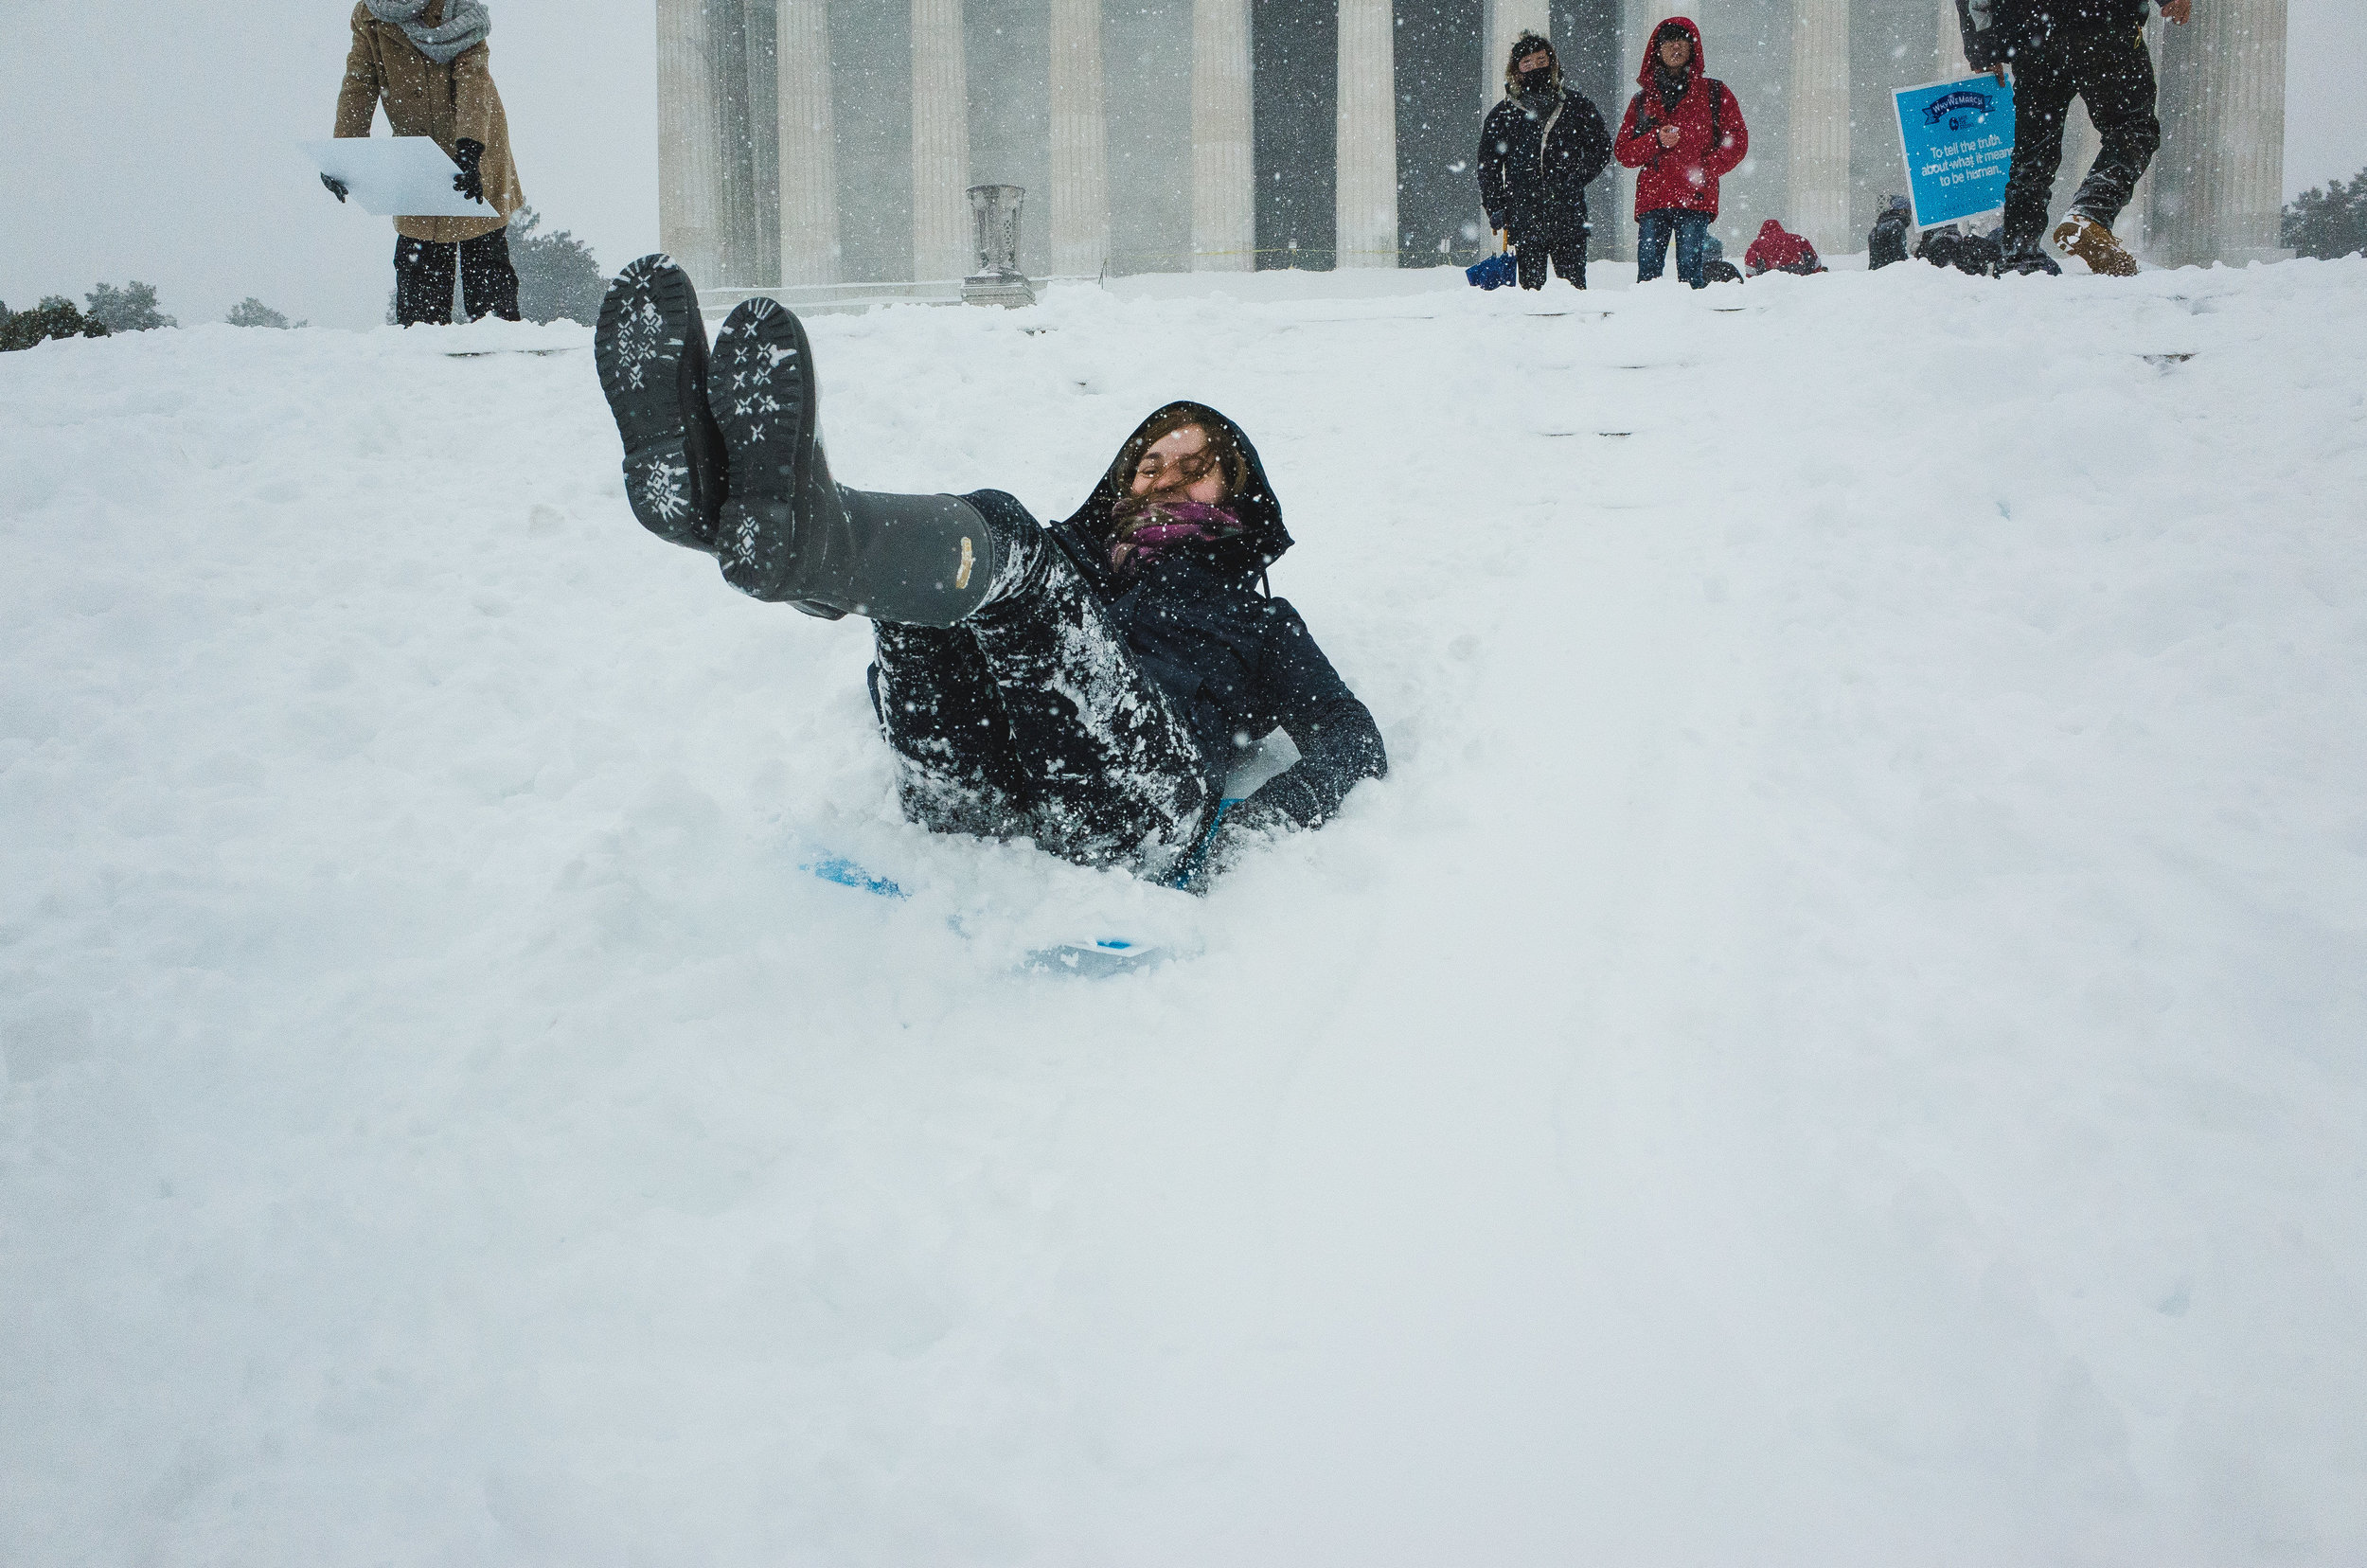 Blizzard Jonas Washington DC 2016 Photographer Mantas Kubilinskas-14.jpg